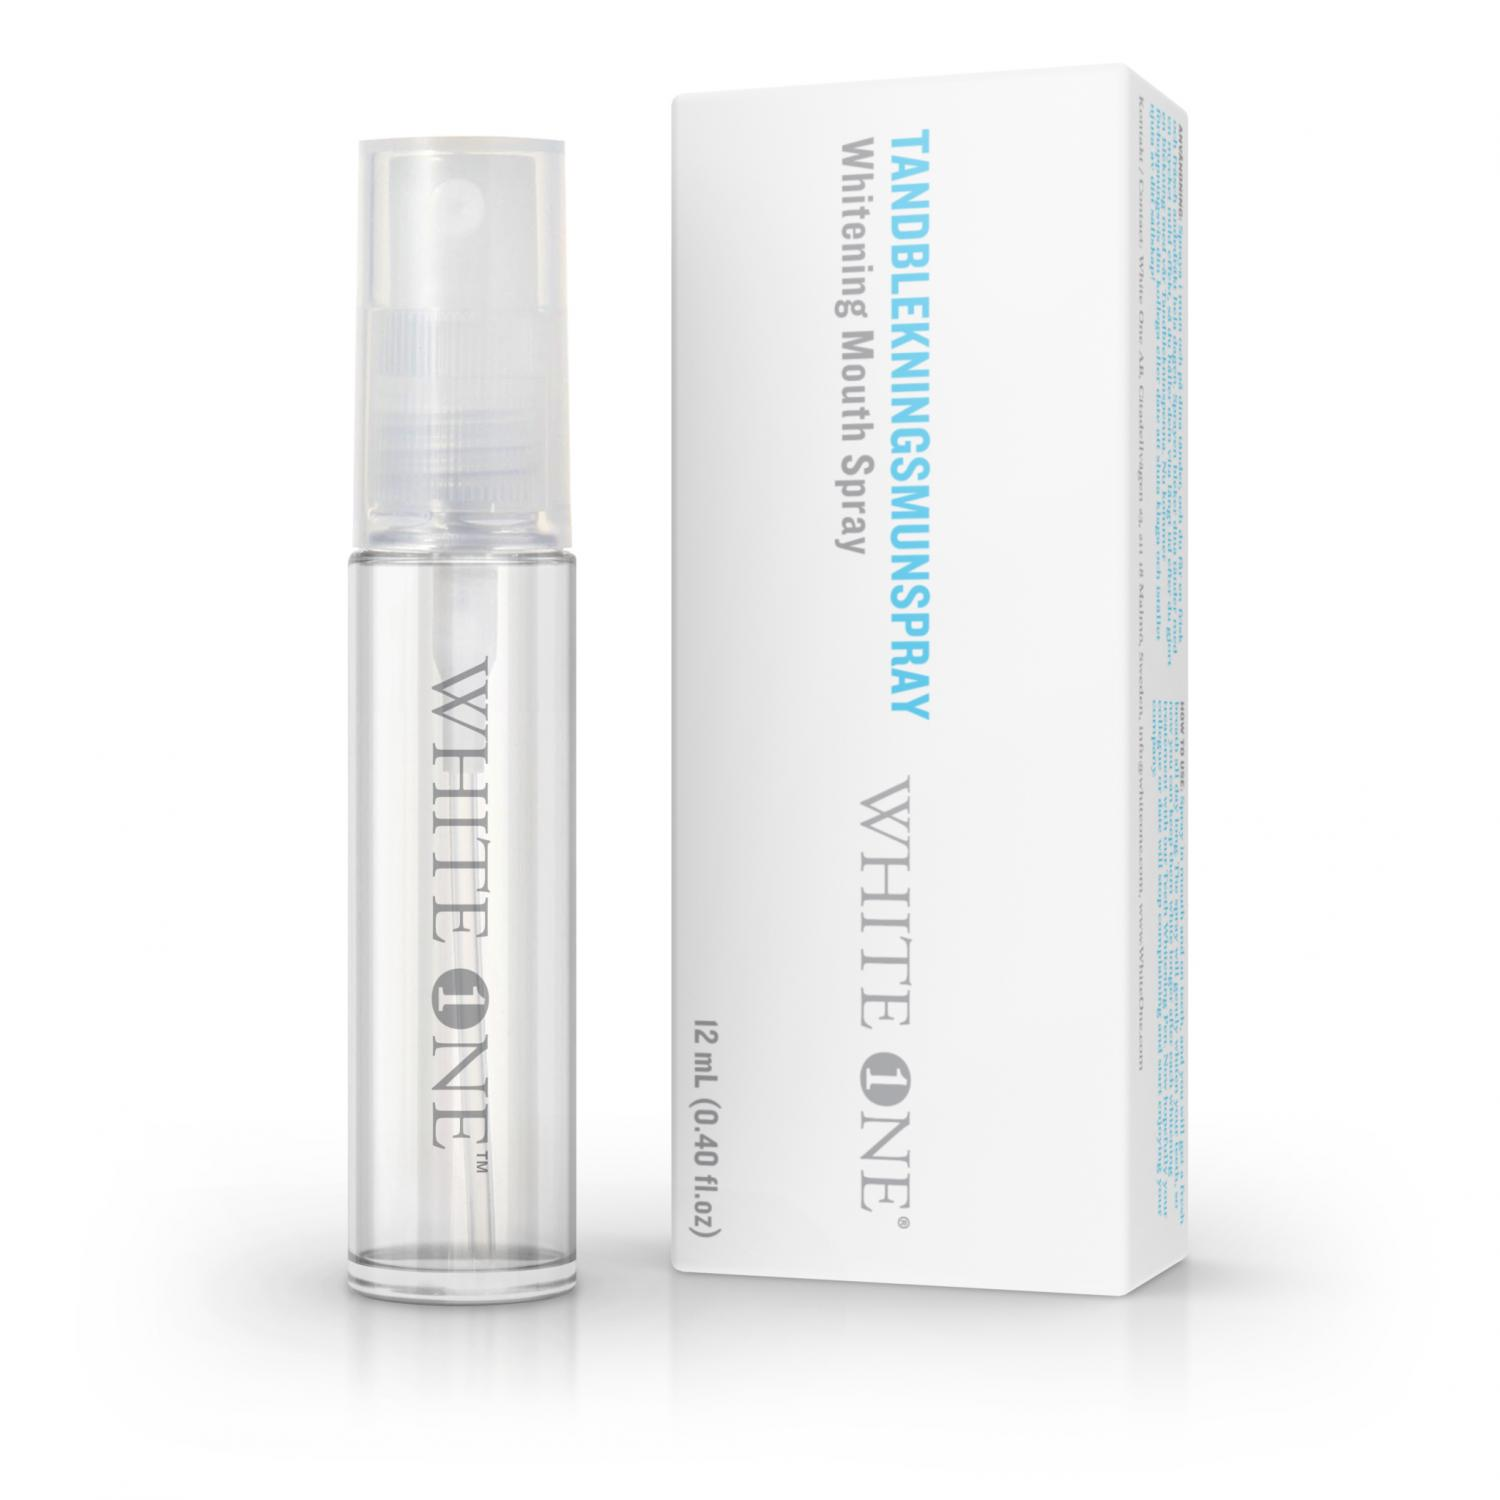 Whitening mouth spray